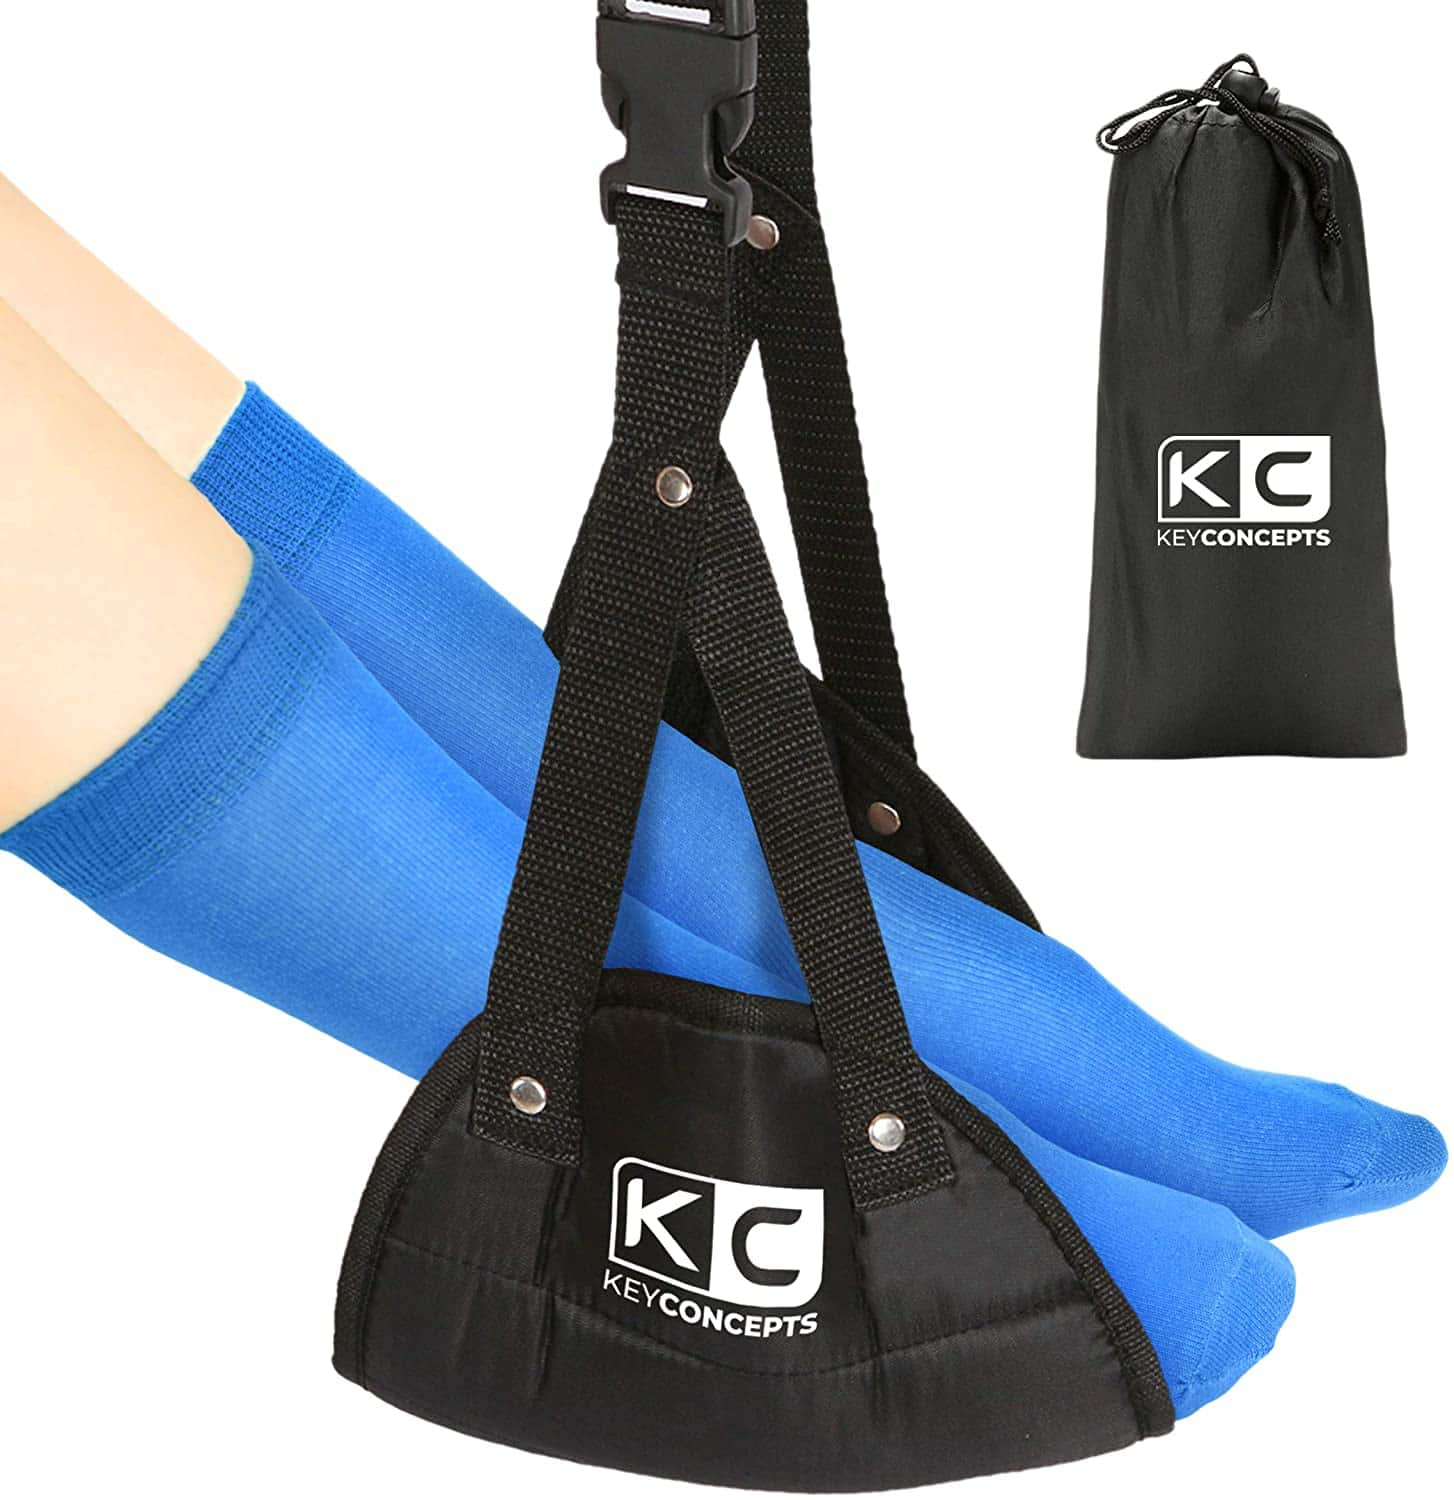 Adjustable Foot Hammock Kit - $4.97 + Free Shipping on Prime or Orders $25+